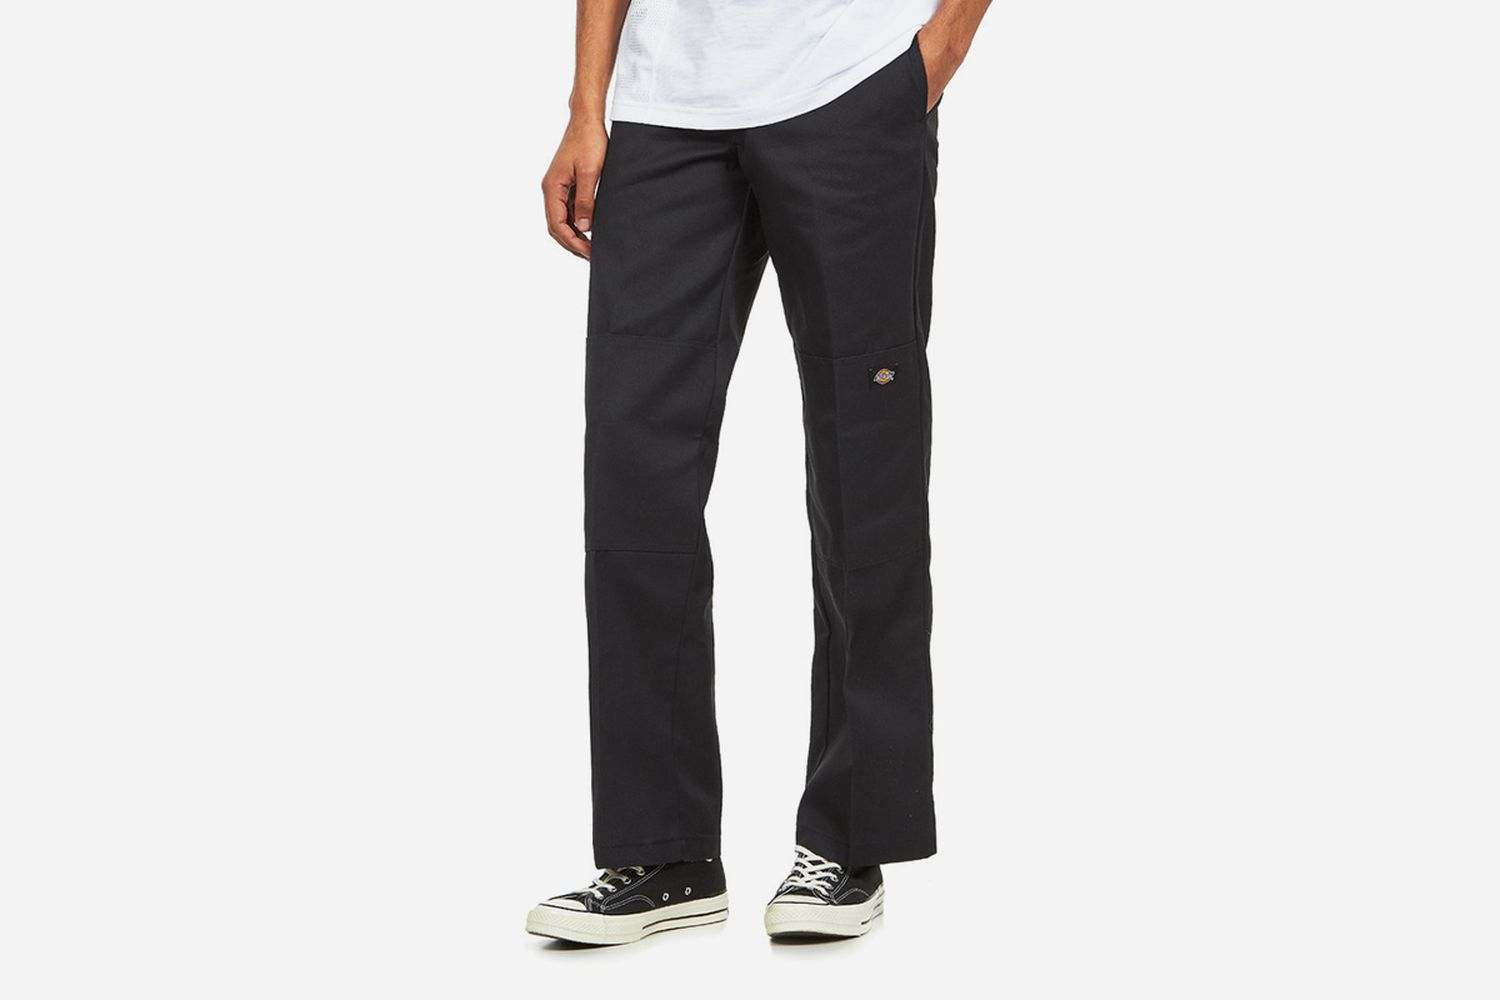 O-Dog Double Knee Work Pants